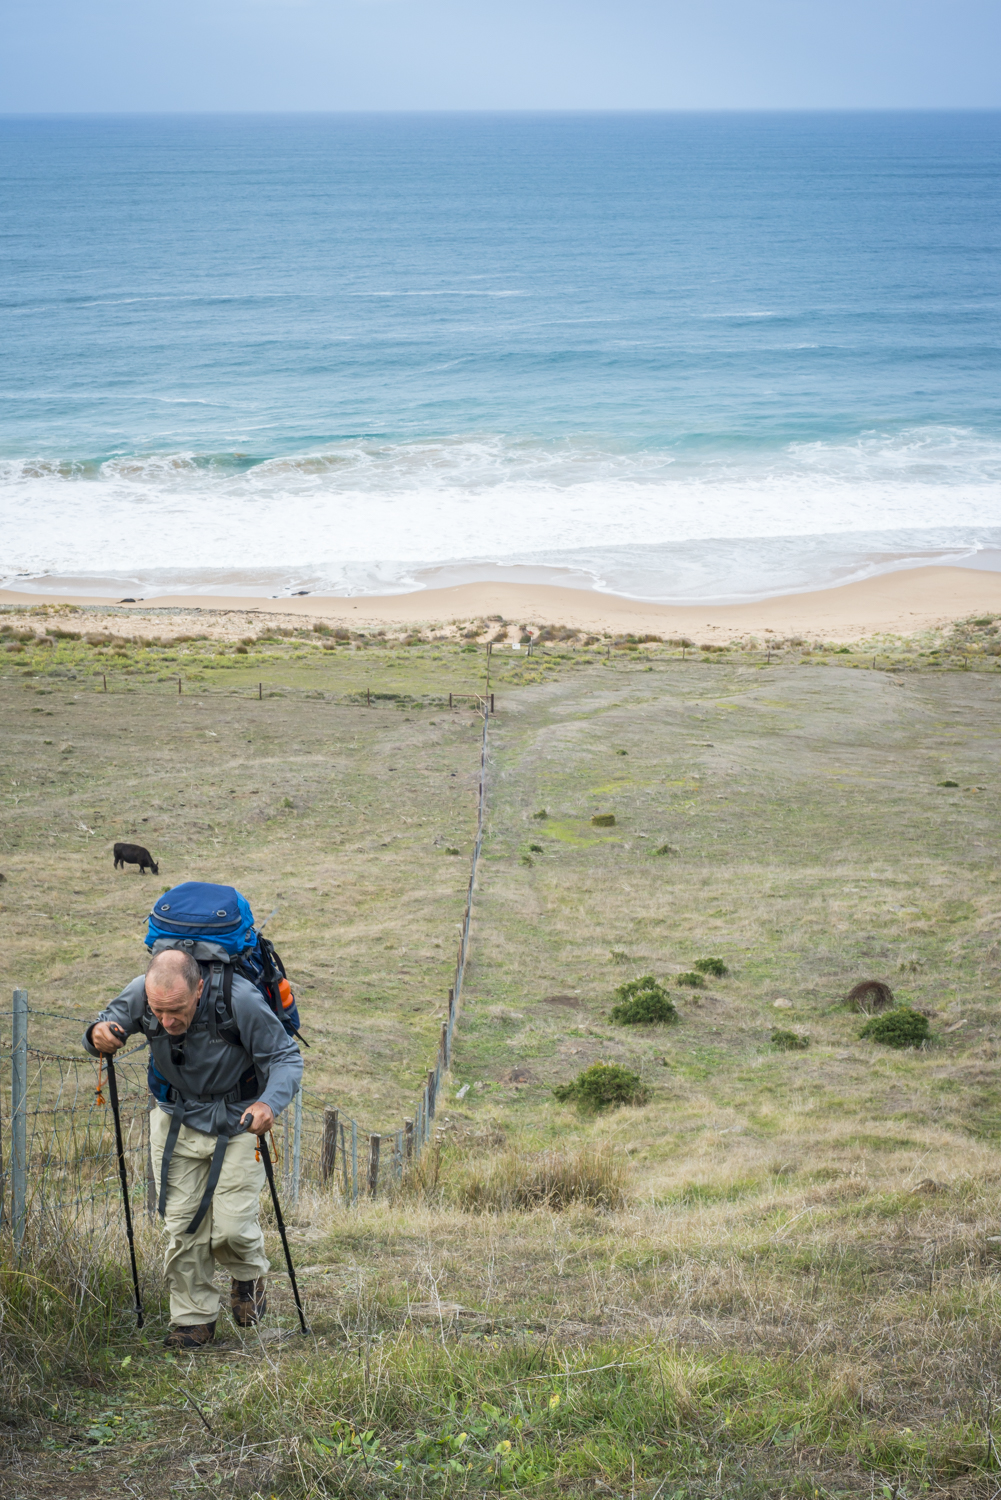 After the Tunkalilla beach soft sand, just a little hill to climb. I had to use the fence to stop me falling over backwards.